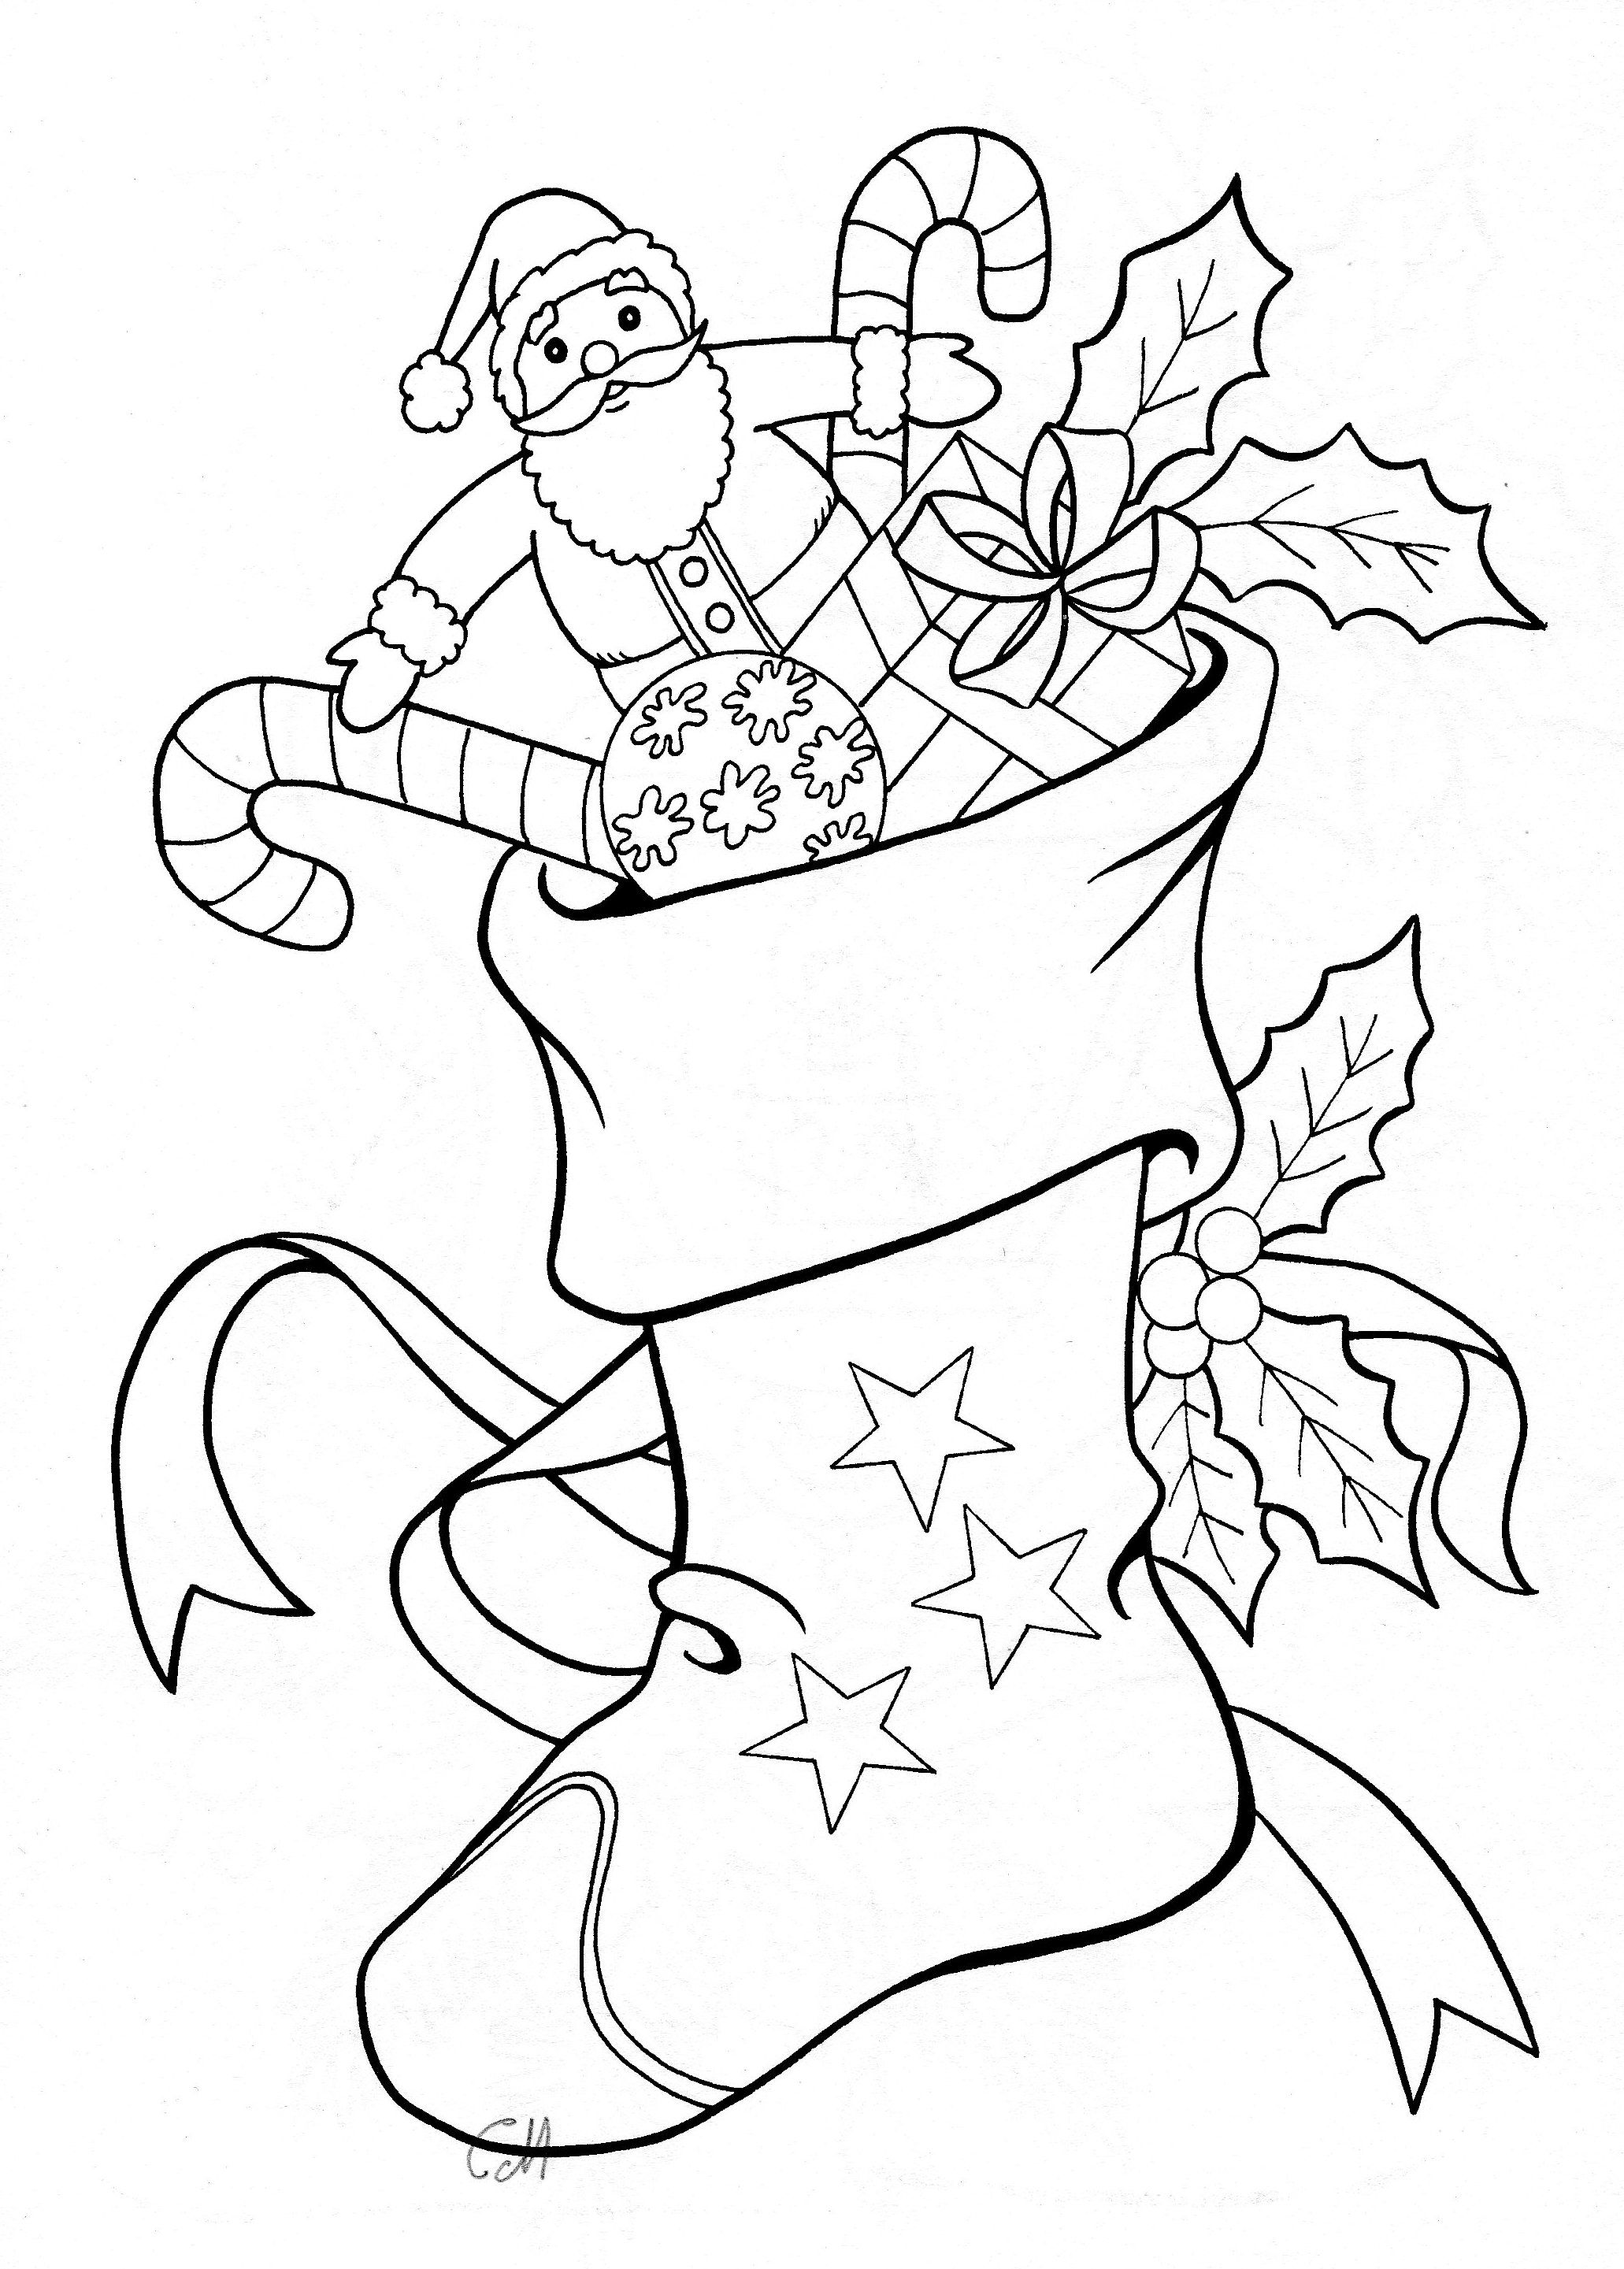 Christmas Embroidery patterns | Coloring pages, Christmas ...